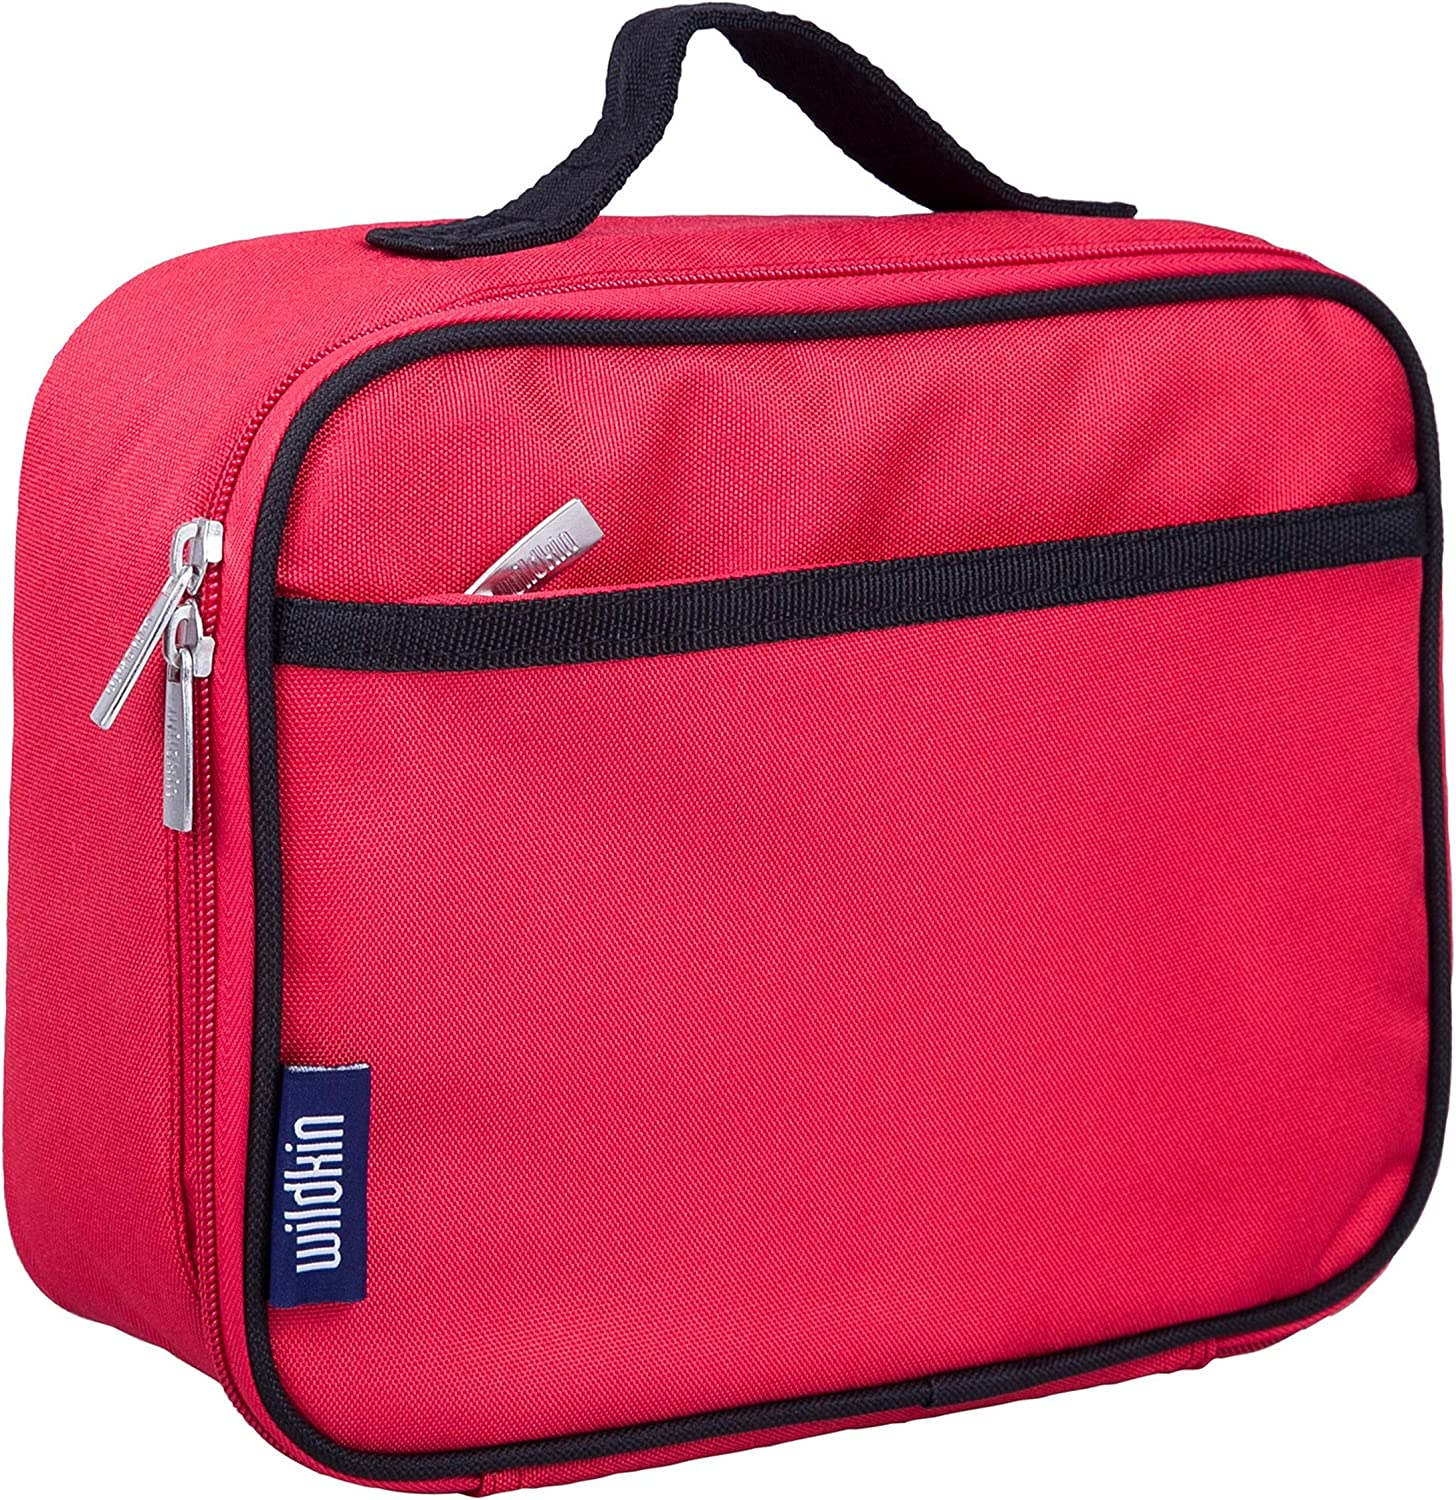 9X8X6 Insulated// Lunch,Baby Bottles,iPad Gift Bag Red Koi.